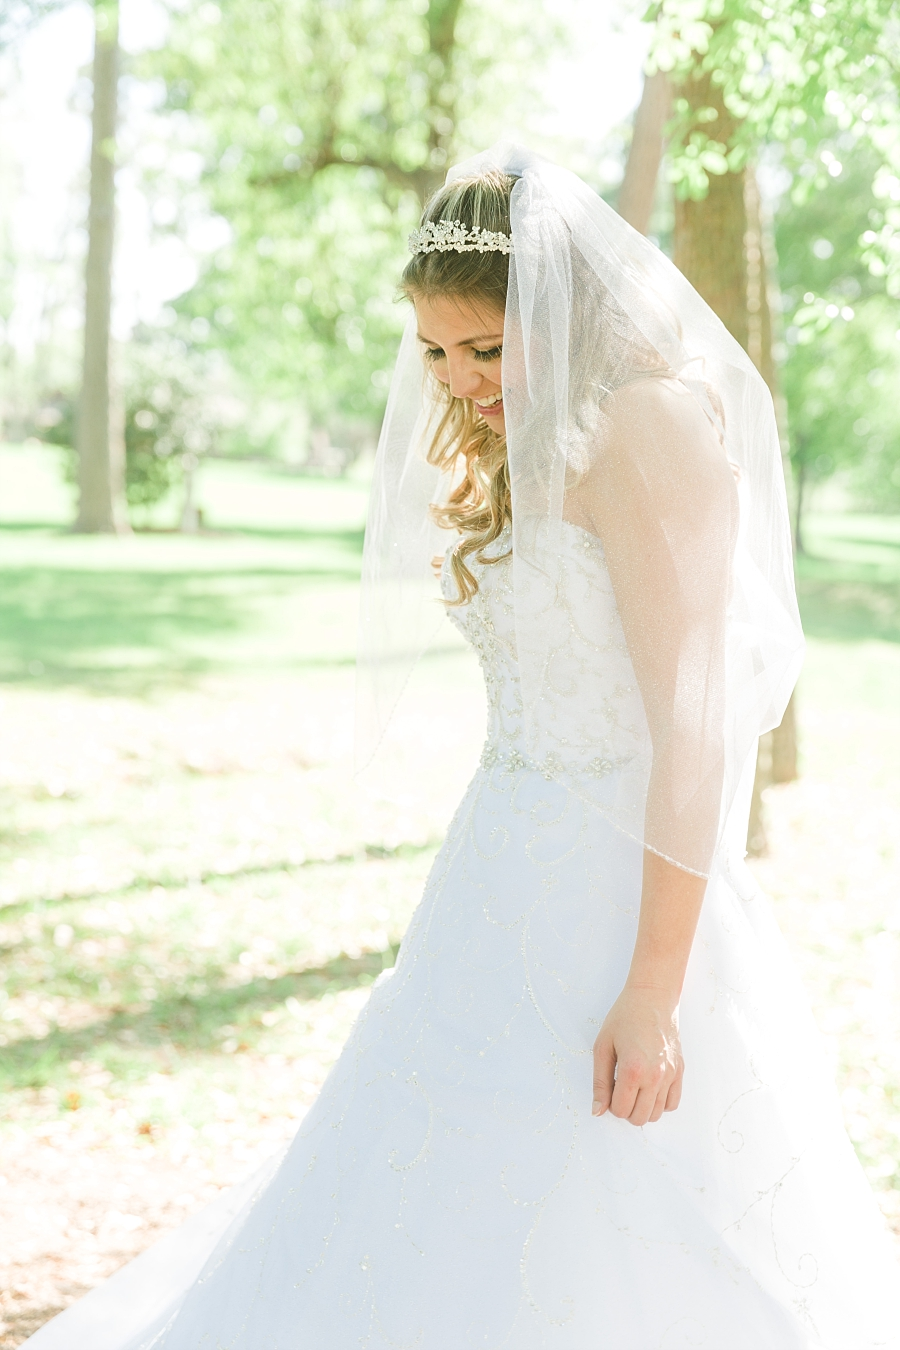 Stacy-Anderson-Photography-Shirley-Acres-Wedding-Photographer_0014.jpg